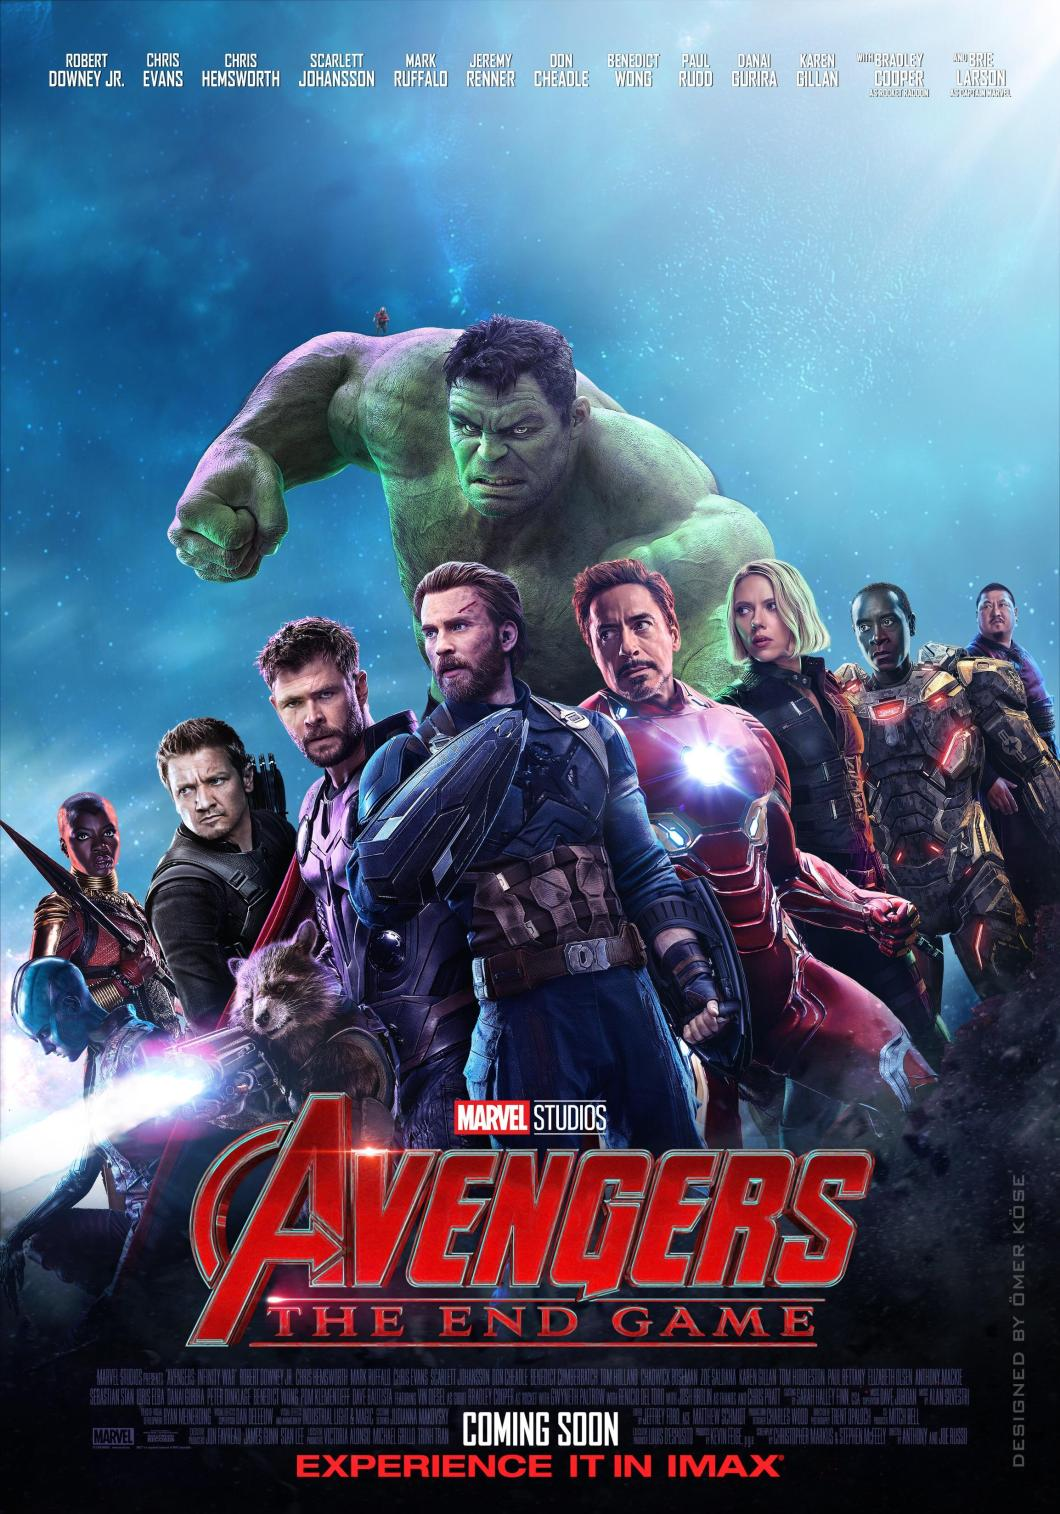 Marvel Studios Avengers Endgame Wallpapers Iphone Android And